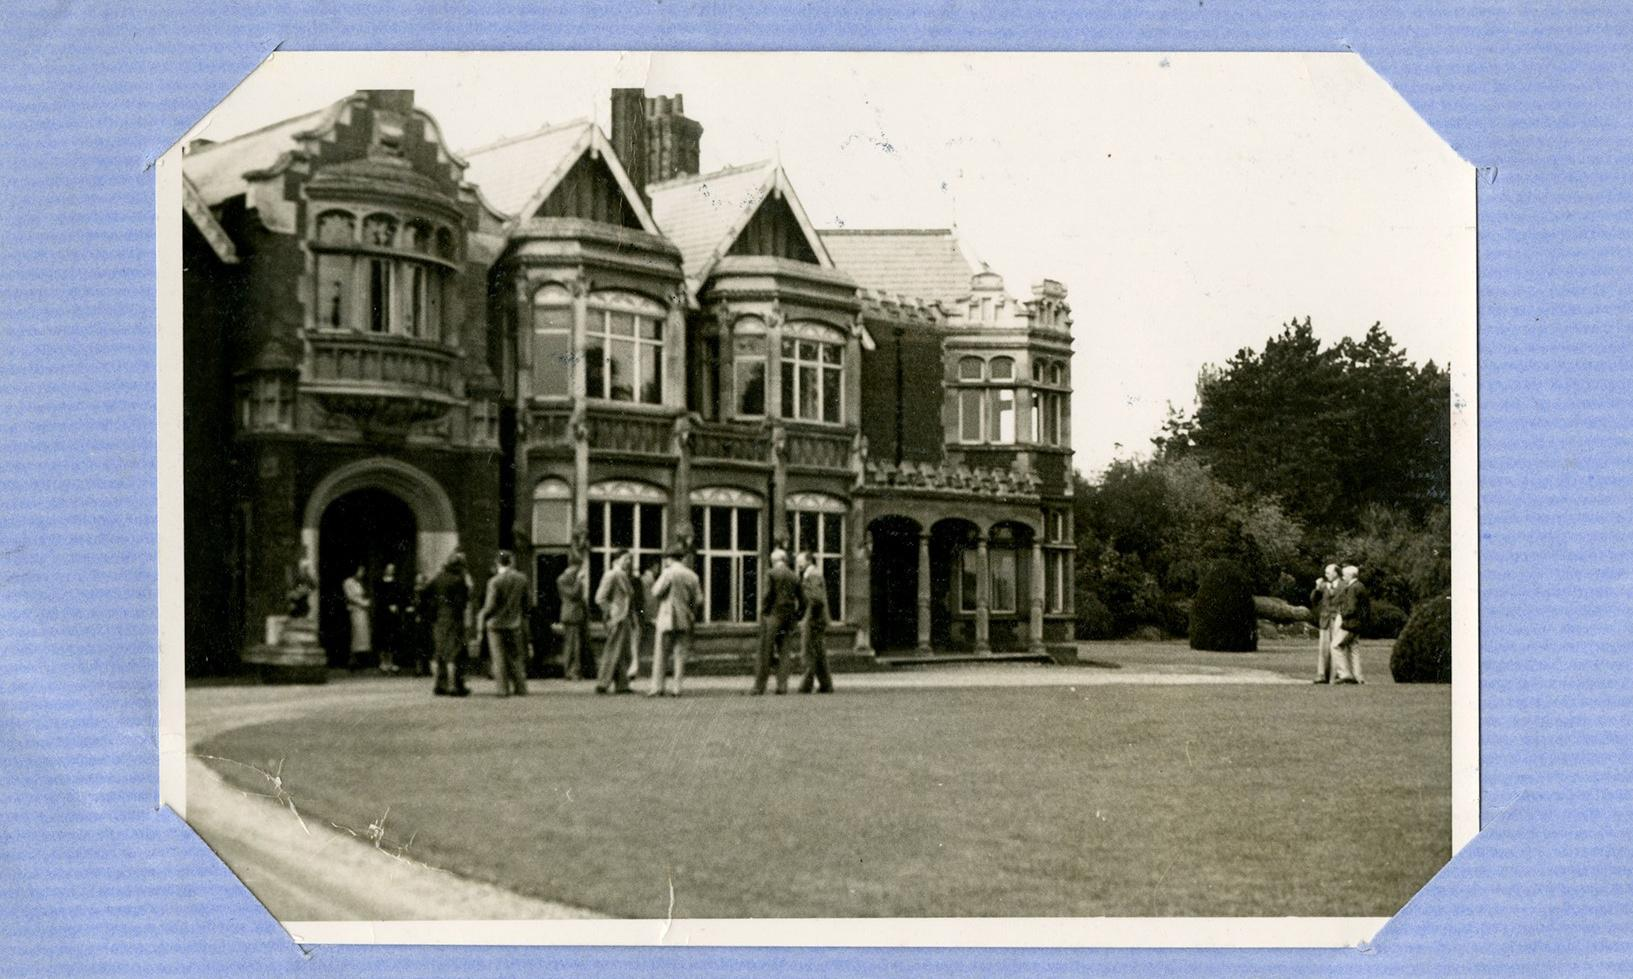 Top-secret Christmas card sent to Bletchley Park codebreakers rediscovered